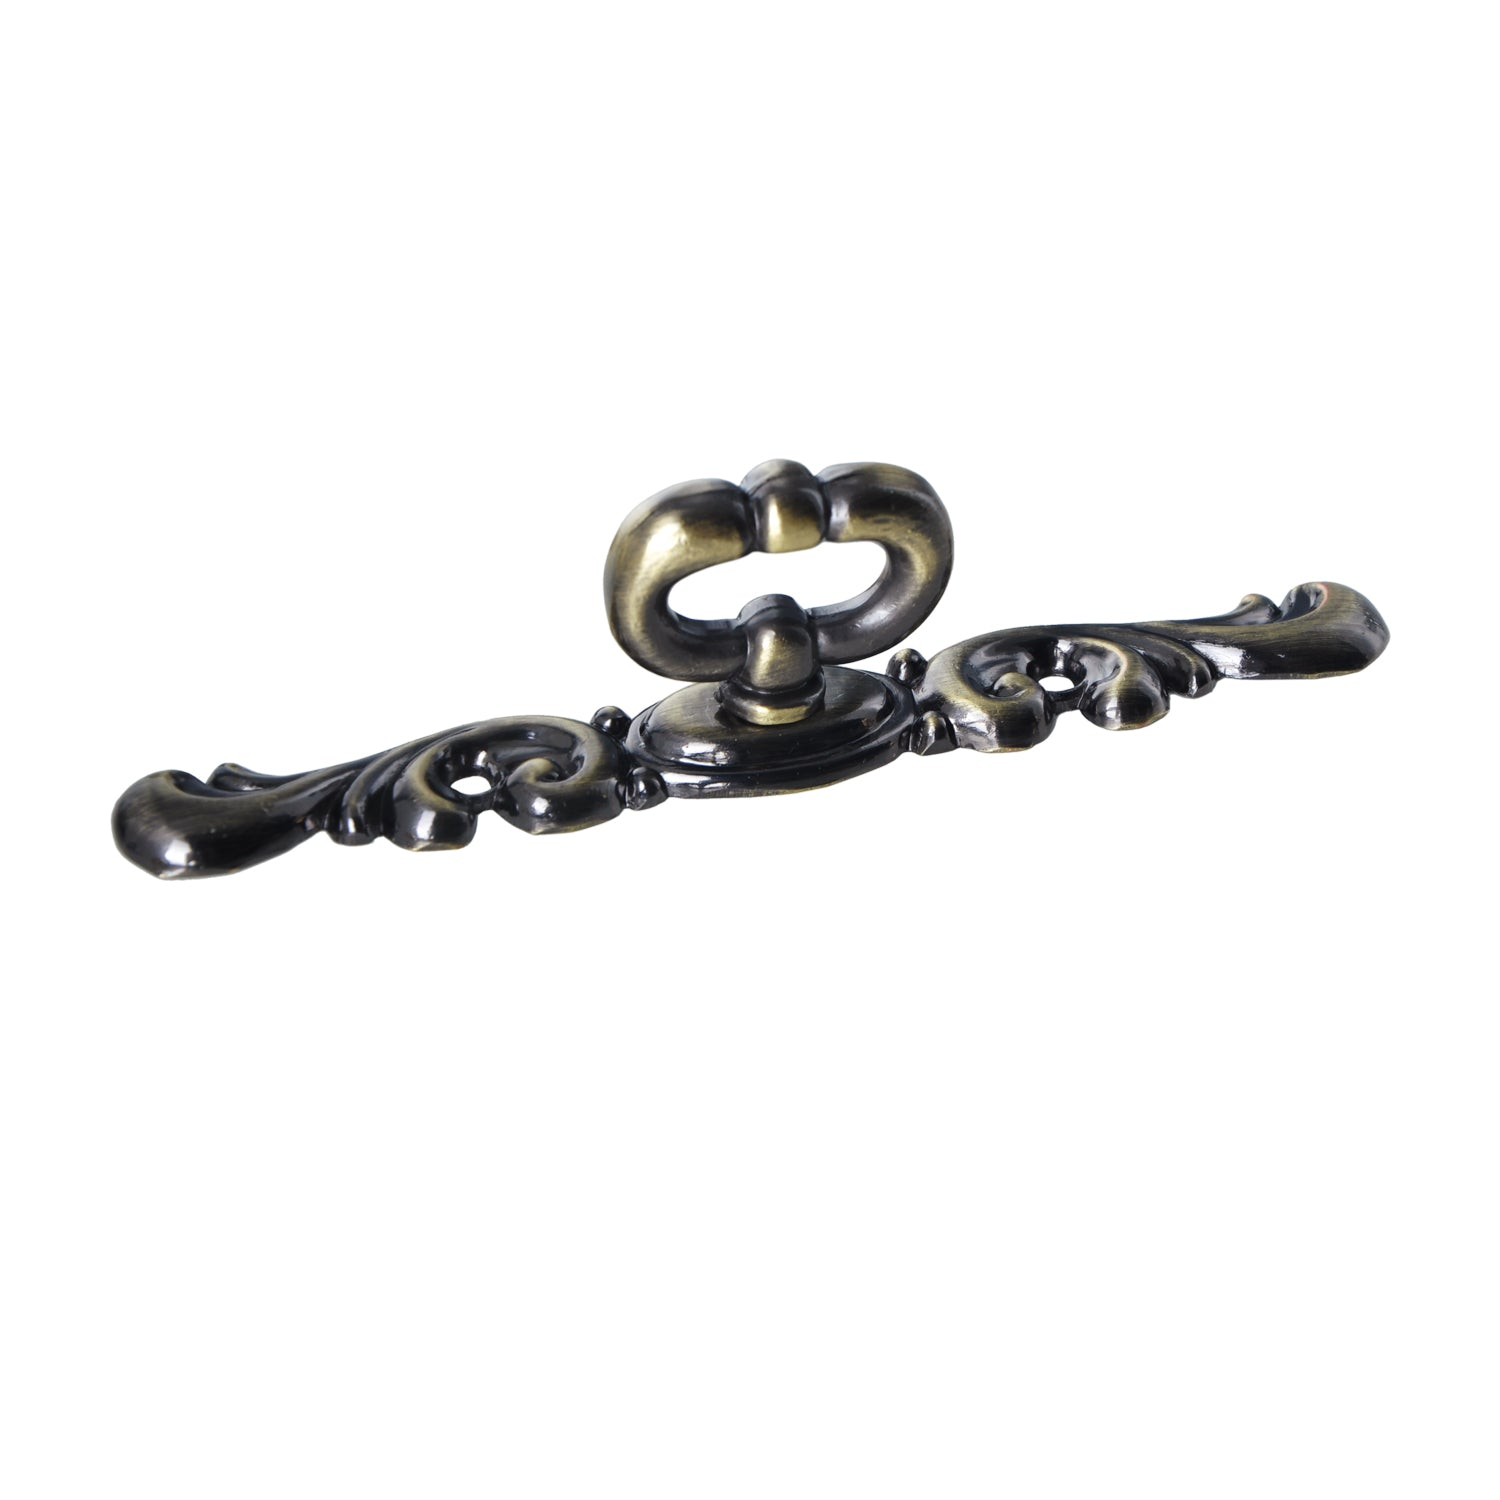 Vallia Furniture Cabinet Pull Antique Brass